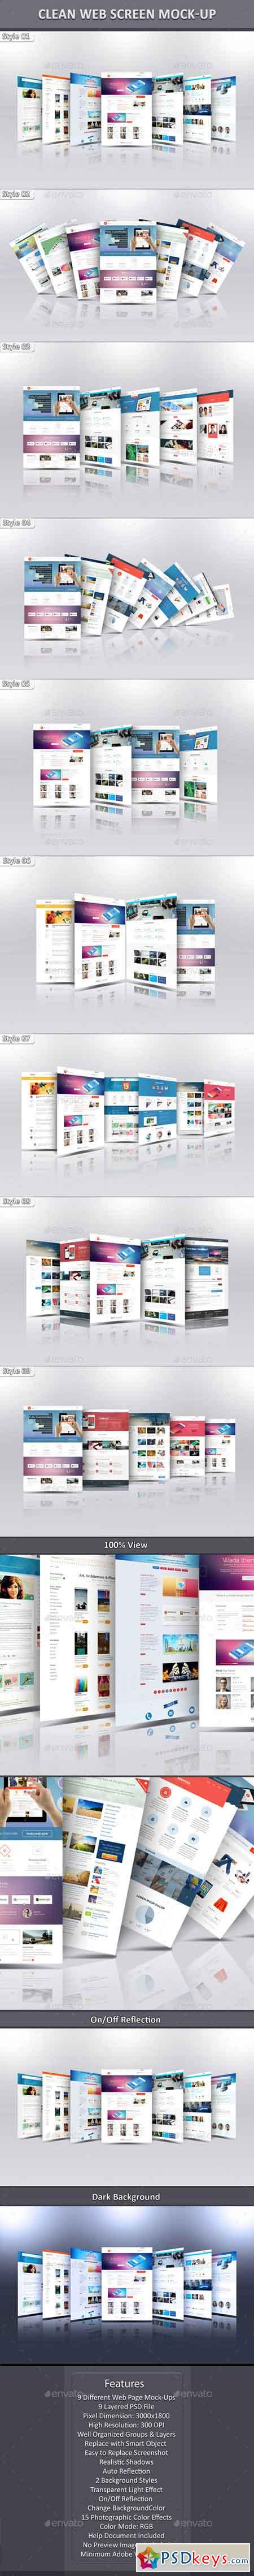 Clean Web Screen Mock-Up 10466689